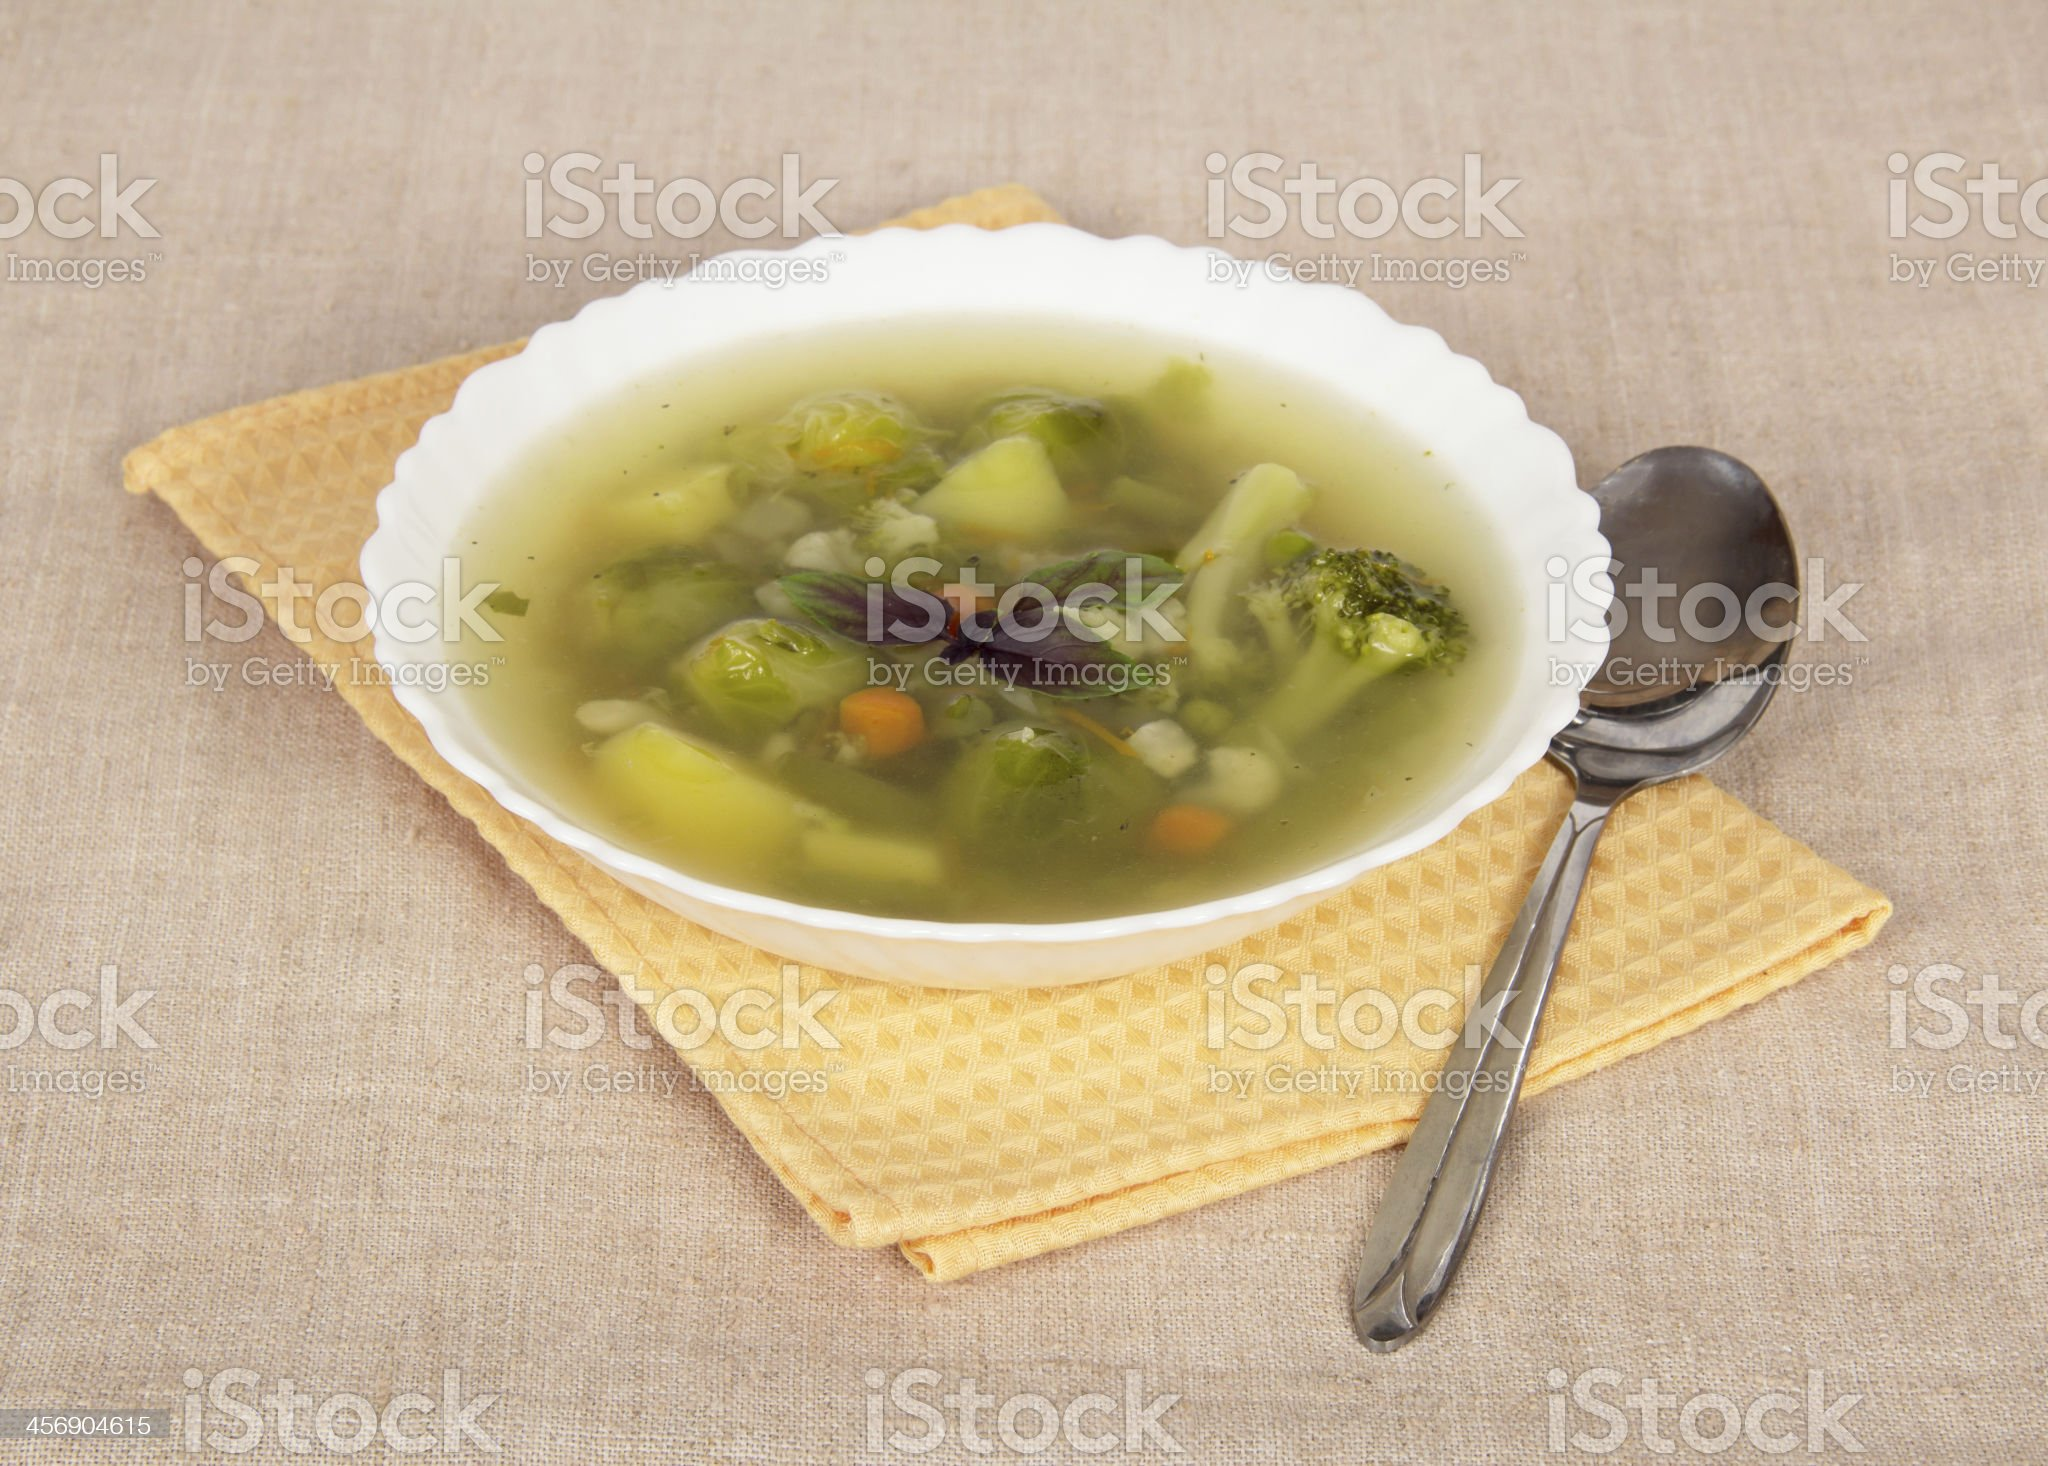 Dietary vegetable soup royalty-free stock photo